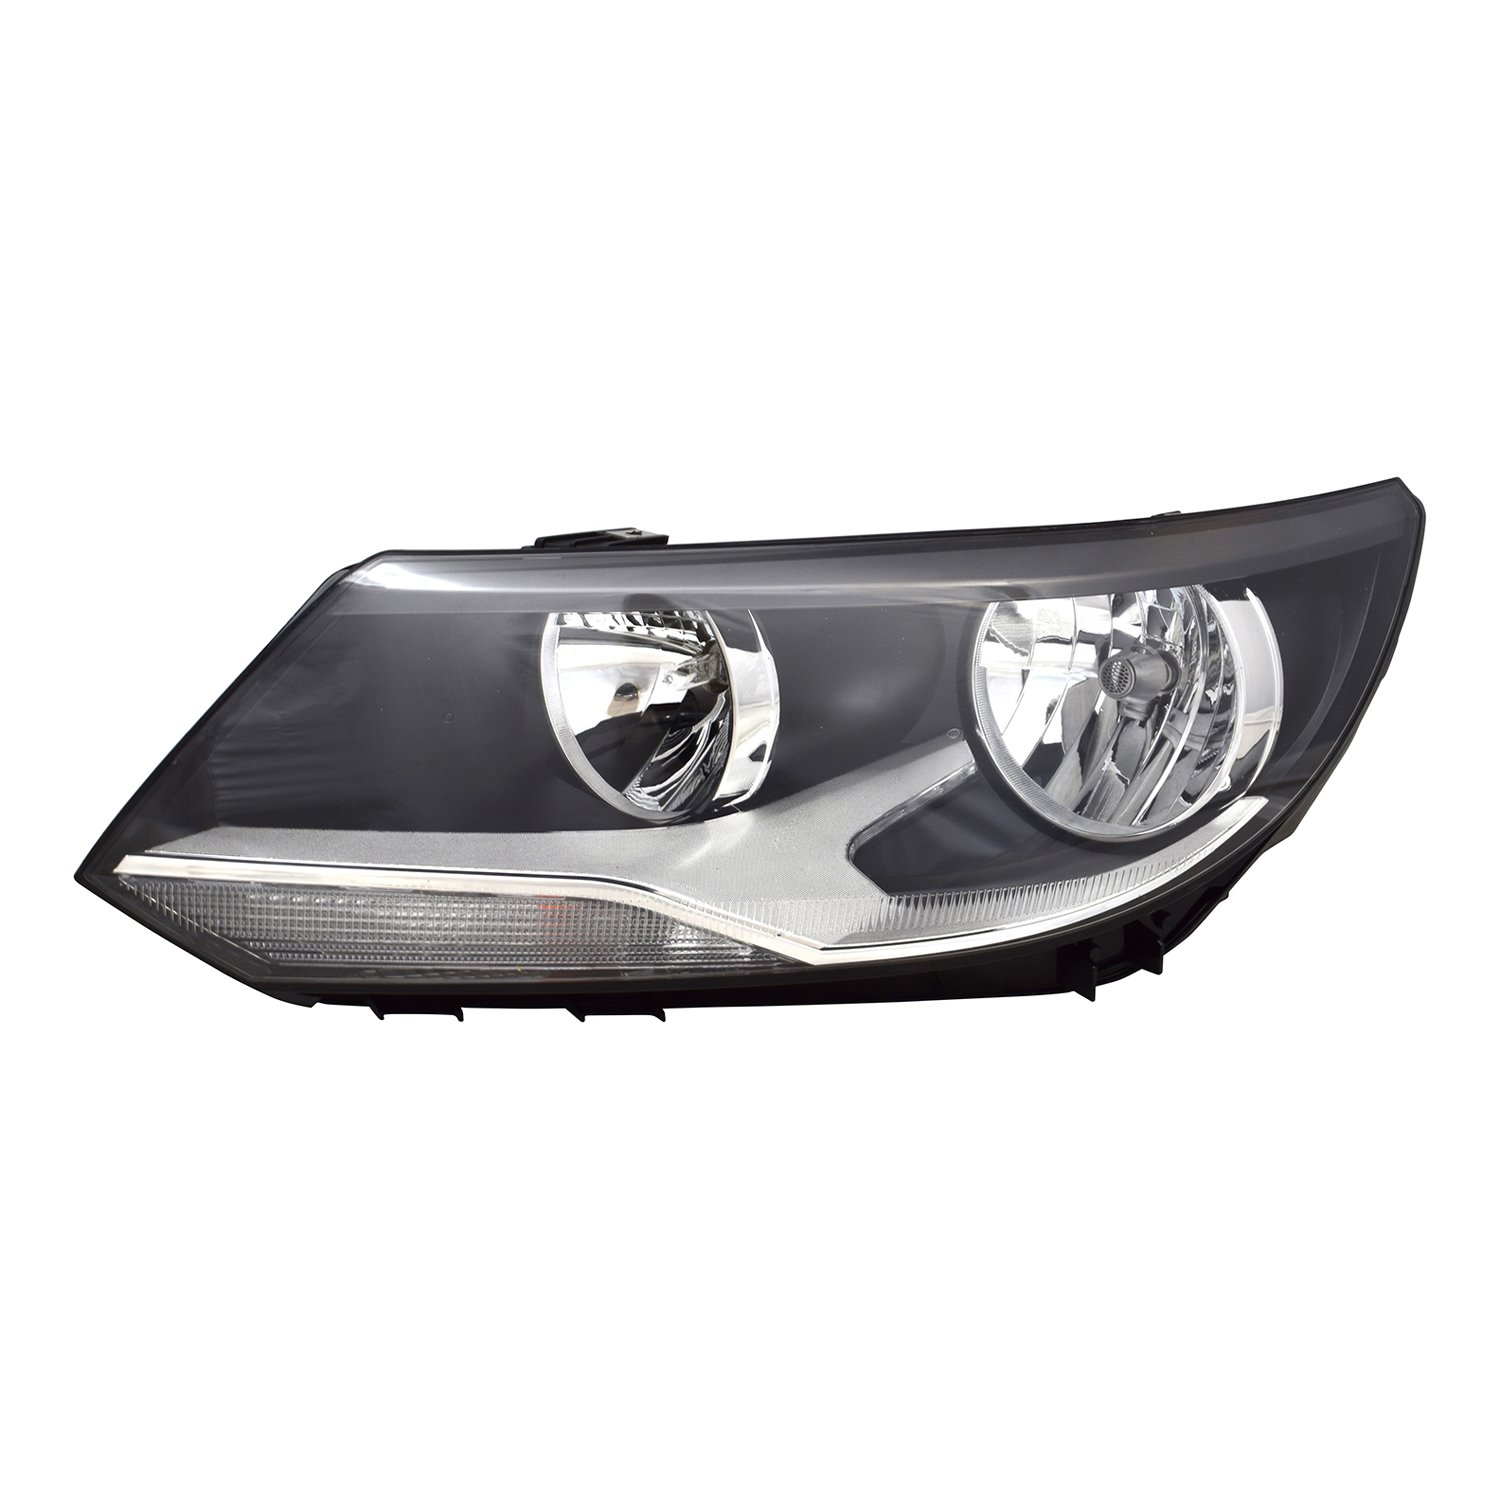 Partslink VW2502152 OE Replacement Headlight Assembly VOLKSWAGEN TIGUAN 2012-2016 Multiple Manufacturers VW2502152N